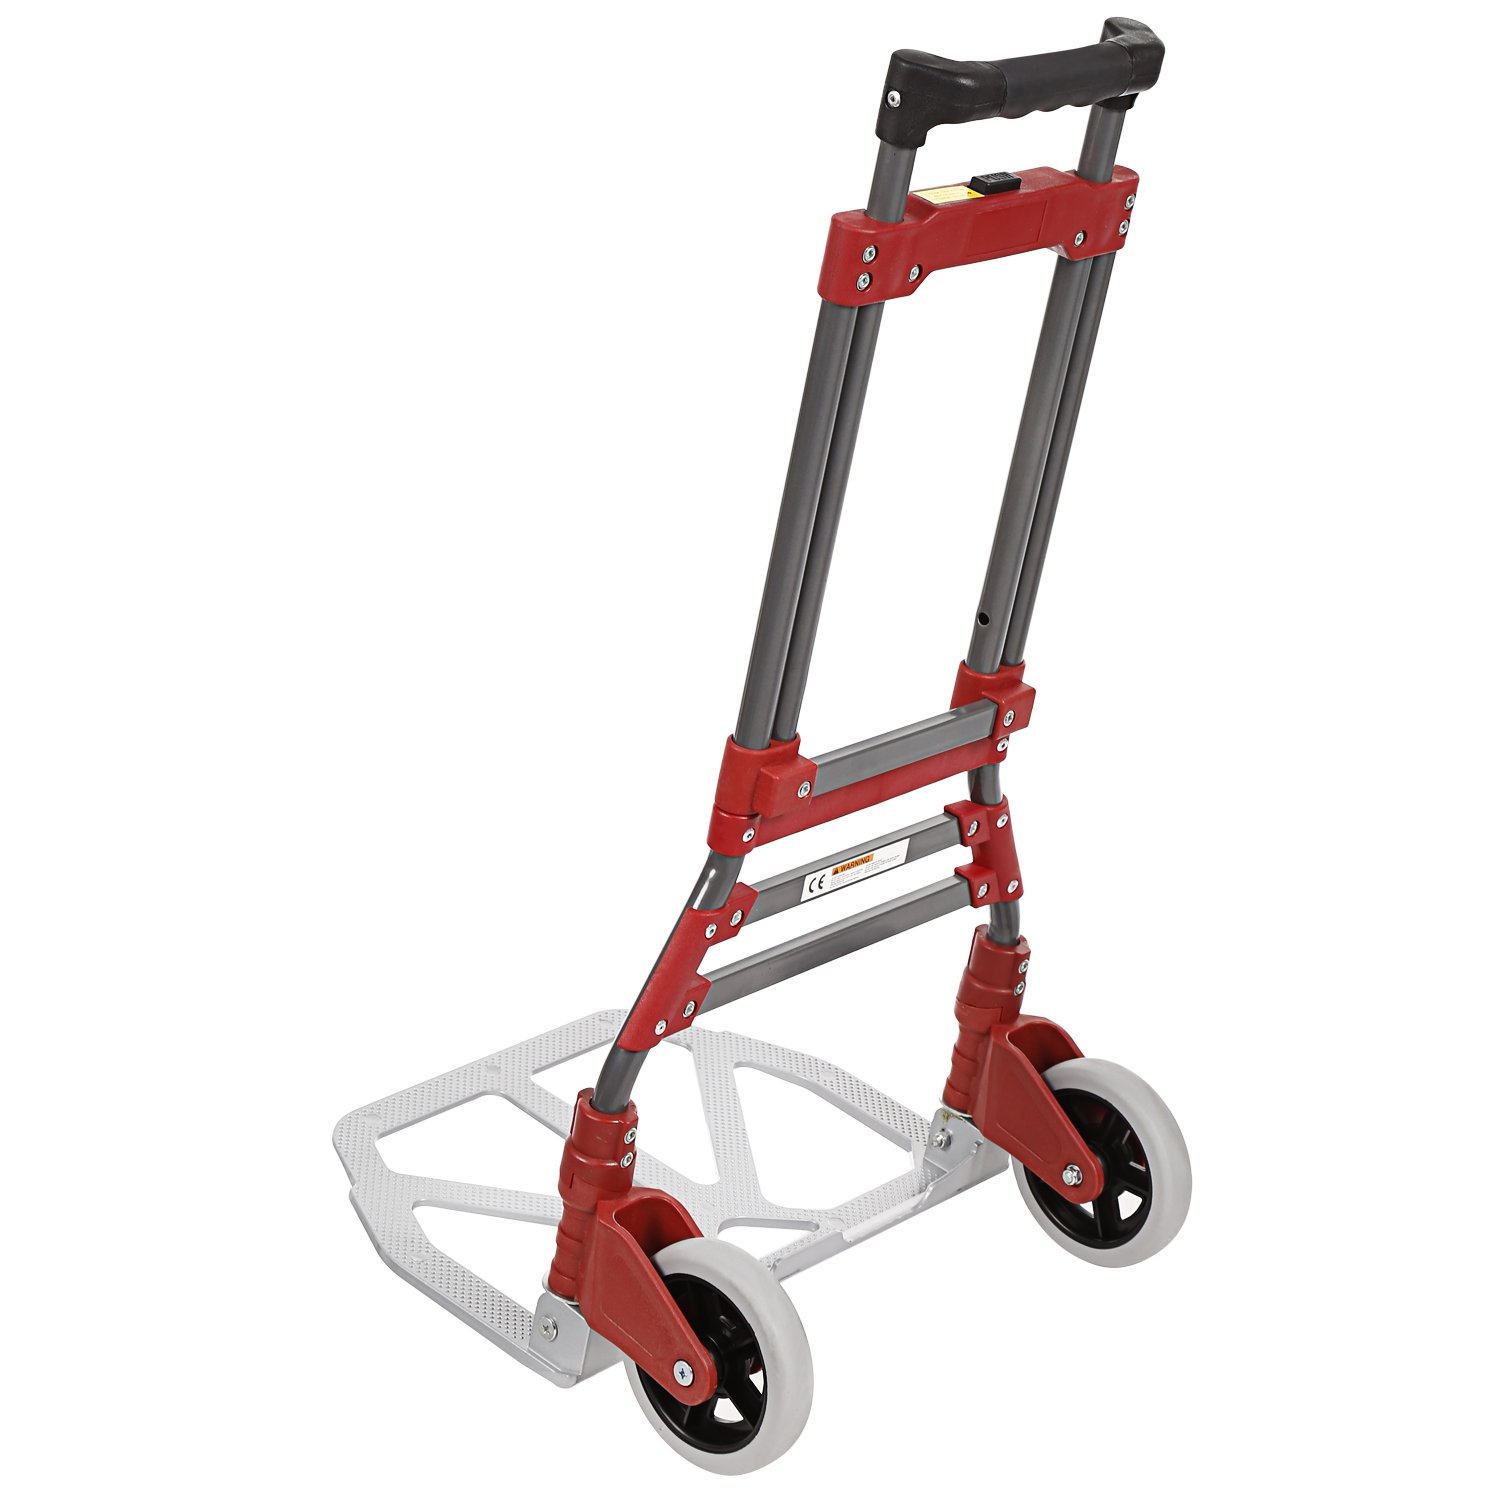 Bluefringe Folding Hand Truck 165lbs Capacity,Adjustable Aluminum Folding Hand Cart with Two PU Rubber wheels and Black Bungee Cord Included